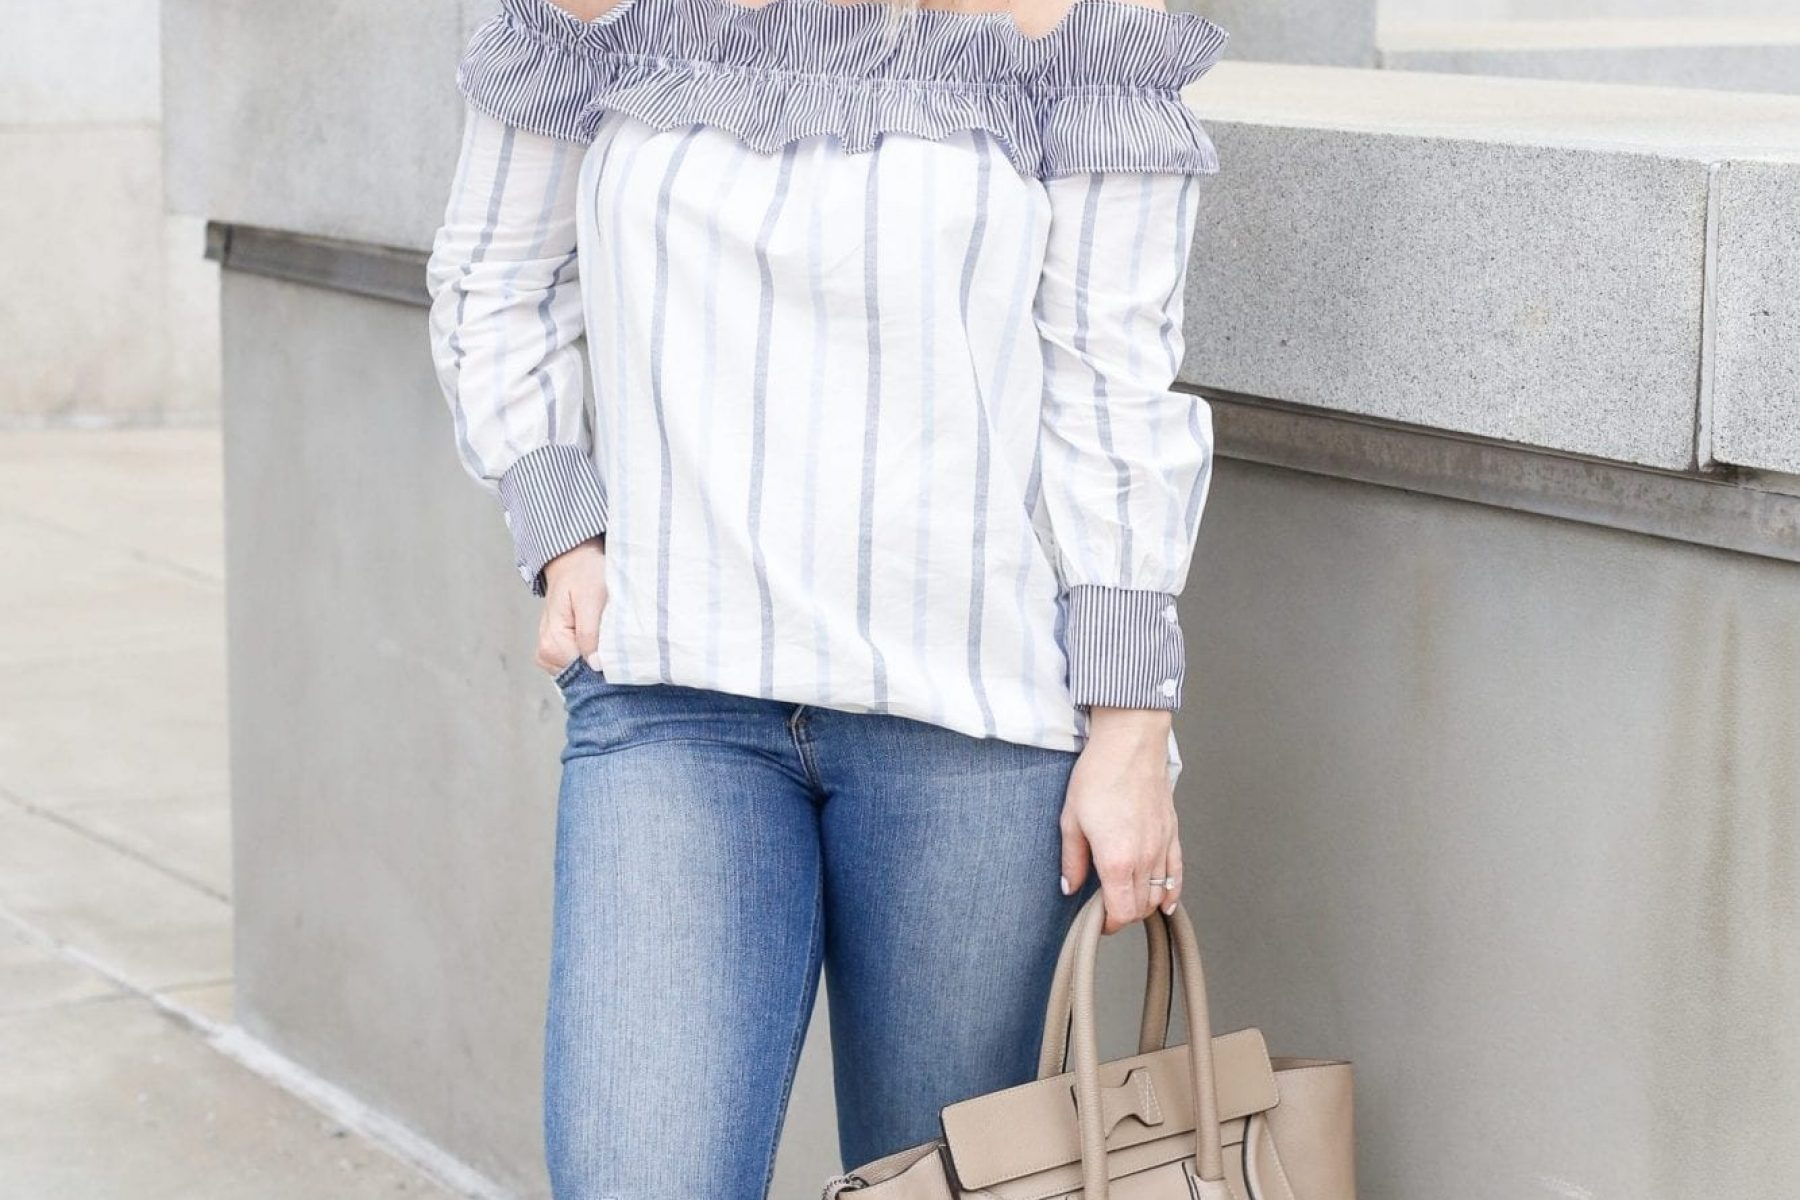 English Factory Off the Shoulder Blouse - Ruffles- Bumpdate- Week 19 - Pregnancy- Bump Style-2